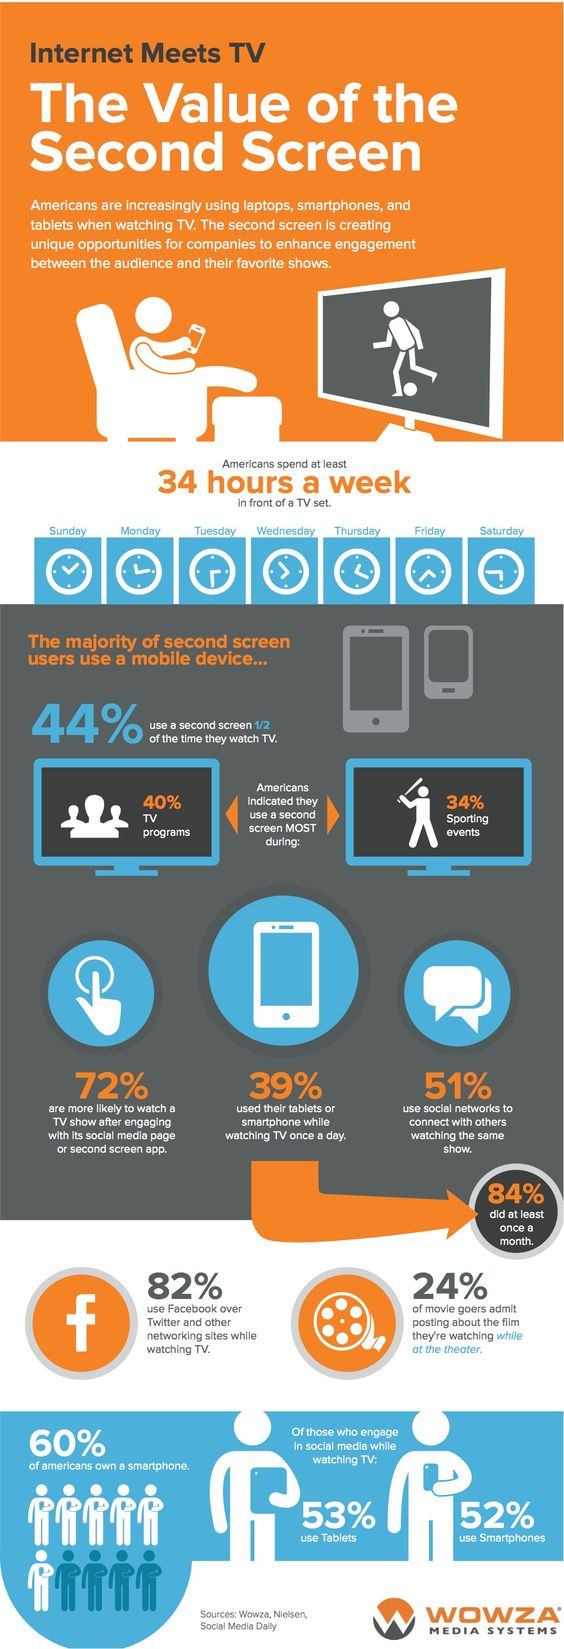 Internet Meets TV - The Value of the Second Screen #socialTV #secondscreen via @AllTwitter - http://www.mediabistro.com/alltwitter/value-second-screen_b51567